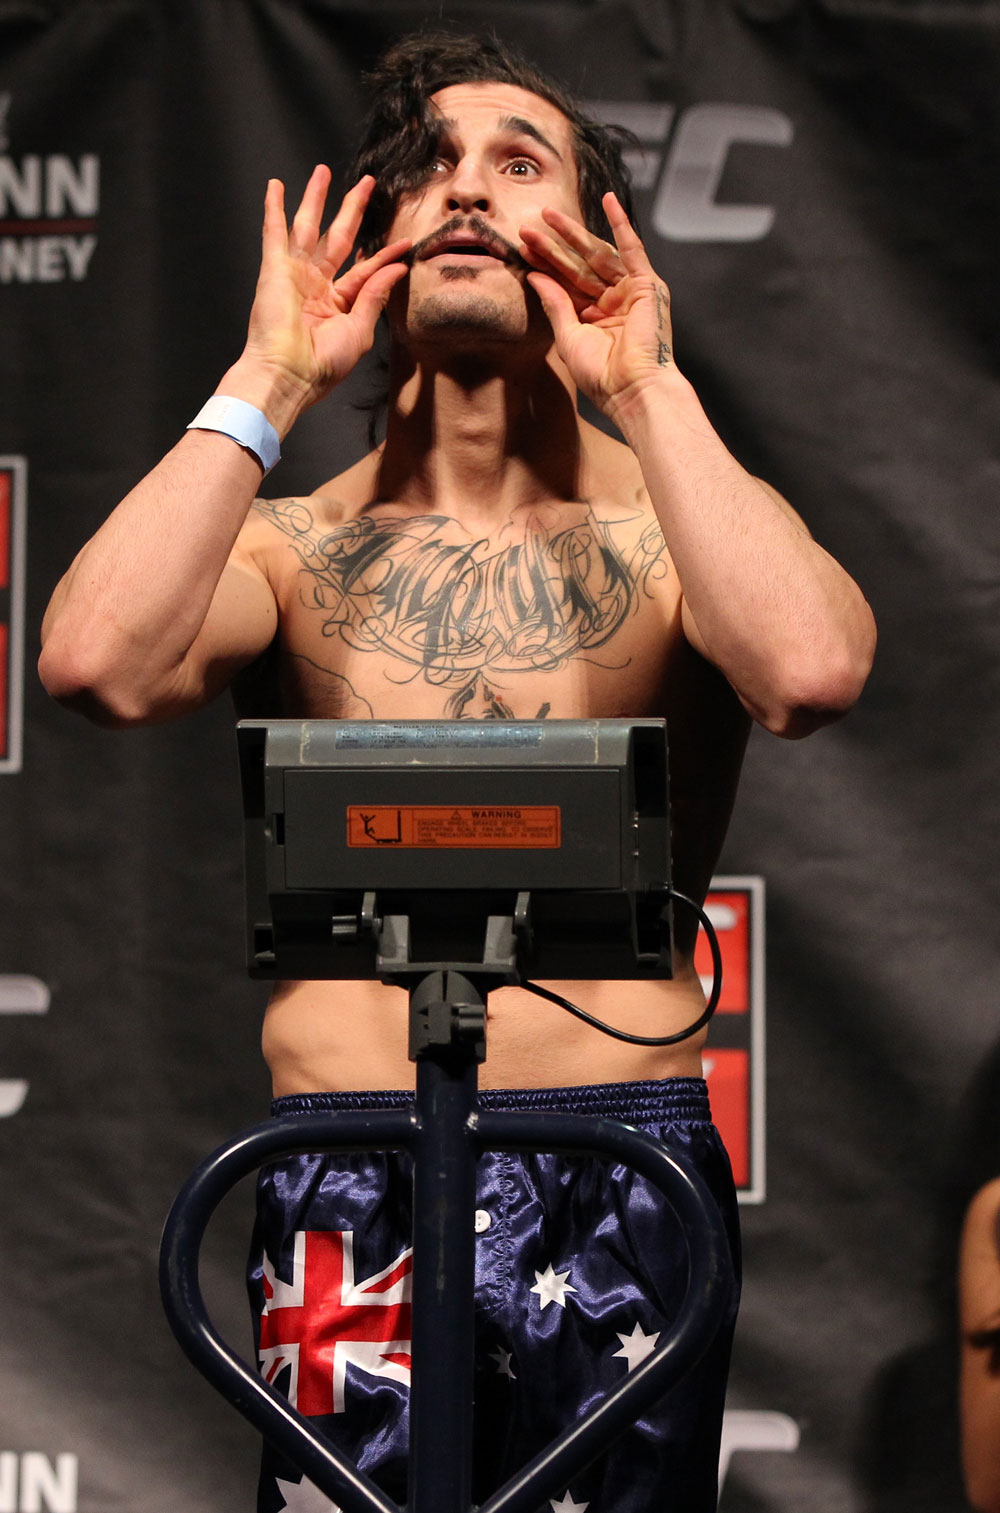 SYDNEY, AUSTRALIA - MARCH 02:  Ian McCall weighs in during the UFC on FX official weigh in at Allphones Arena on March 2, 2012 in Sydney, Australia.  (Photo by Josh Hedges/Zuffa LLC/Zuffa LLC via Getty Images) *** Local Caption *** Ian McCall